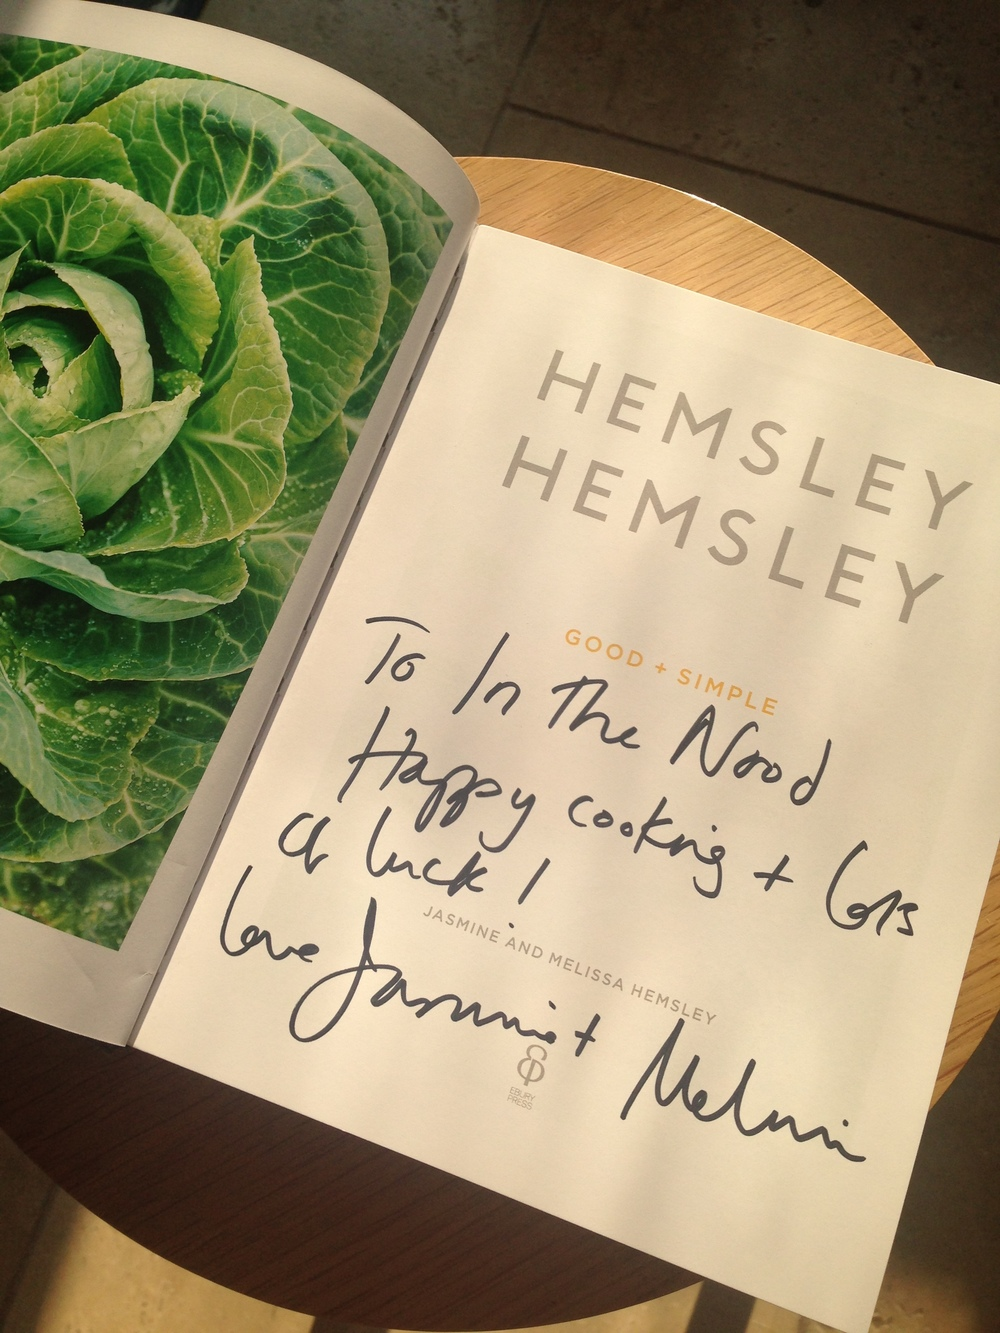 @hemsleyhemsley signed book for In The Nood